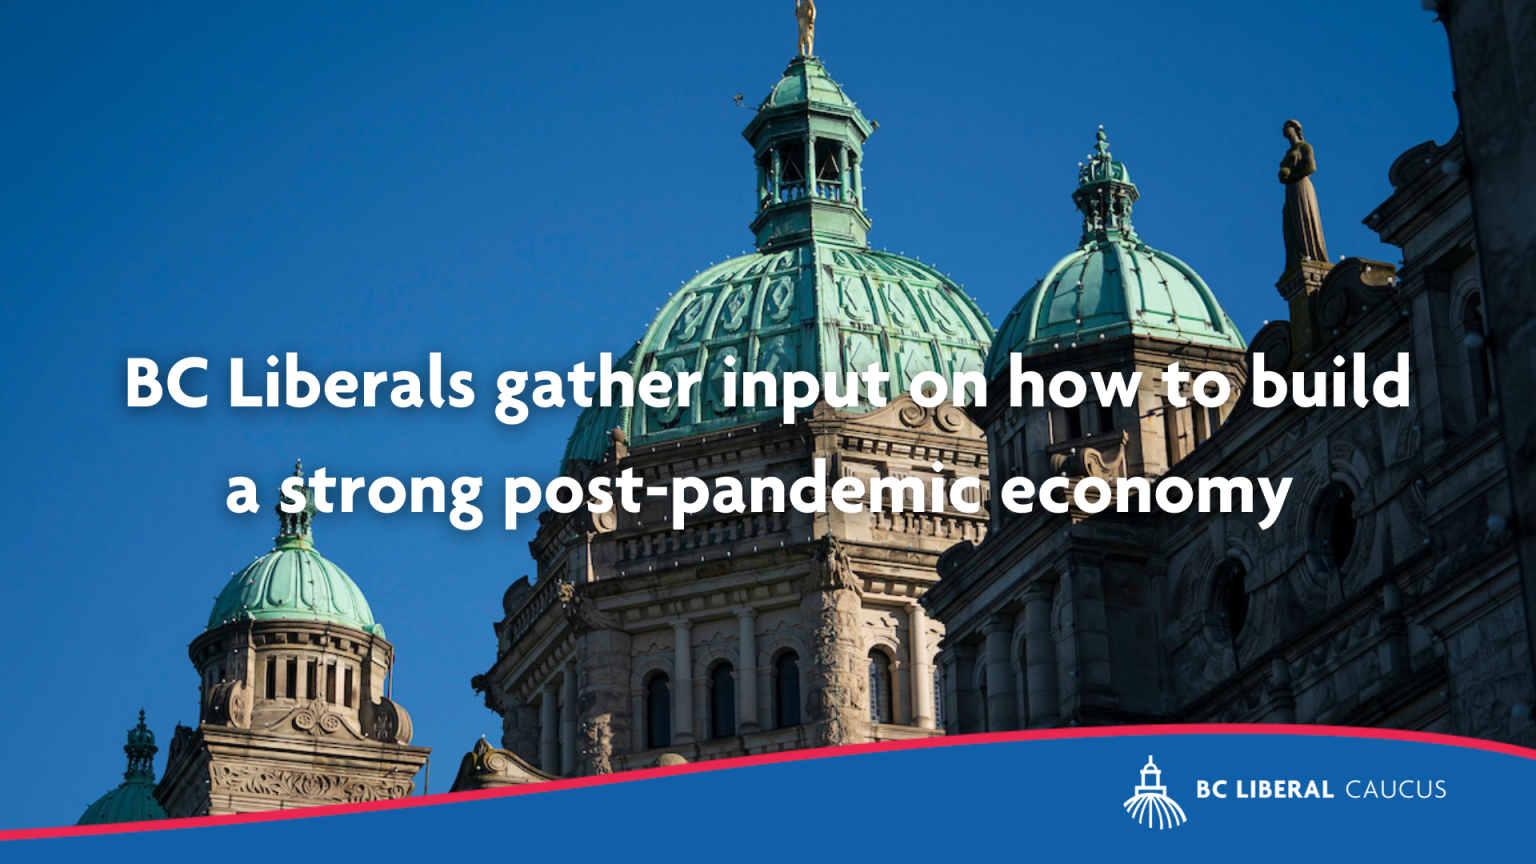 BC Liberals gather input on how to build a strong post-pandemic economy